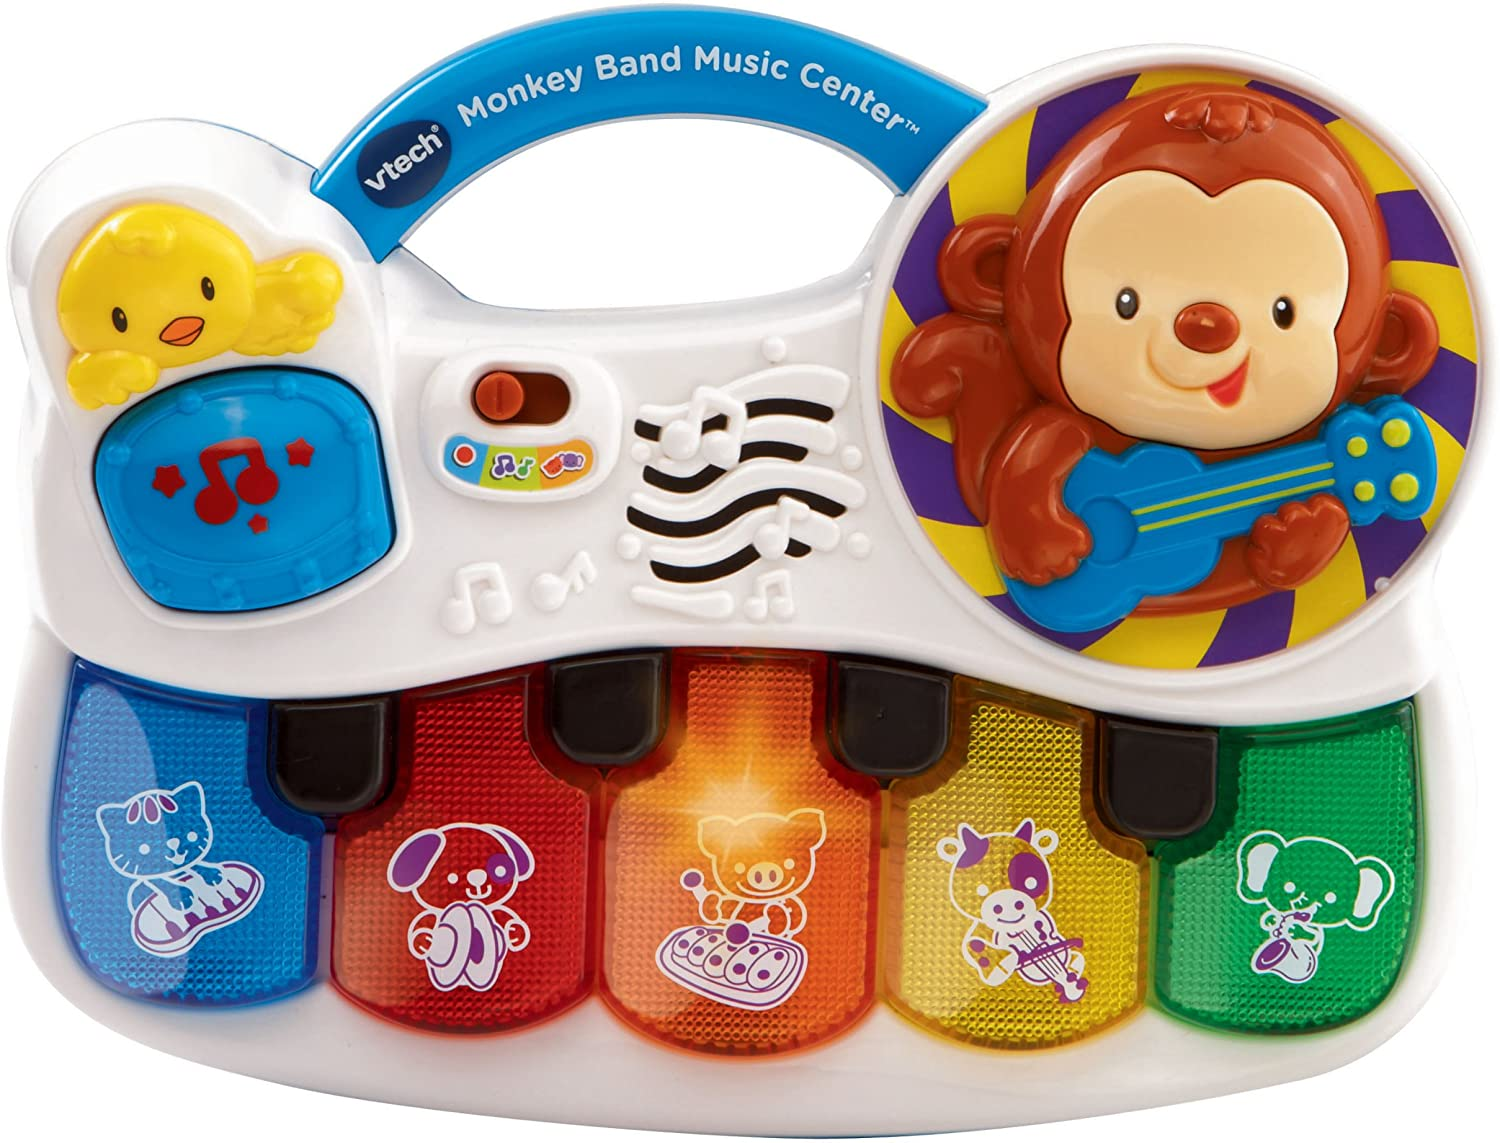 VTech Monkey Band Music Center, Great Gift for Kids, Toddlers, Toy for Boys and Girls, Ages Infant, 1, 2, 3